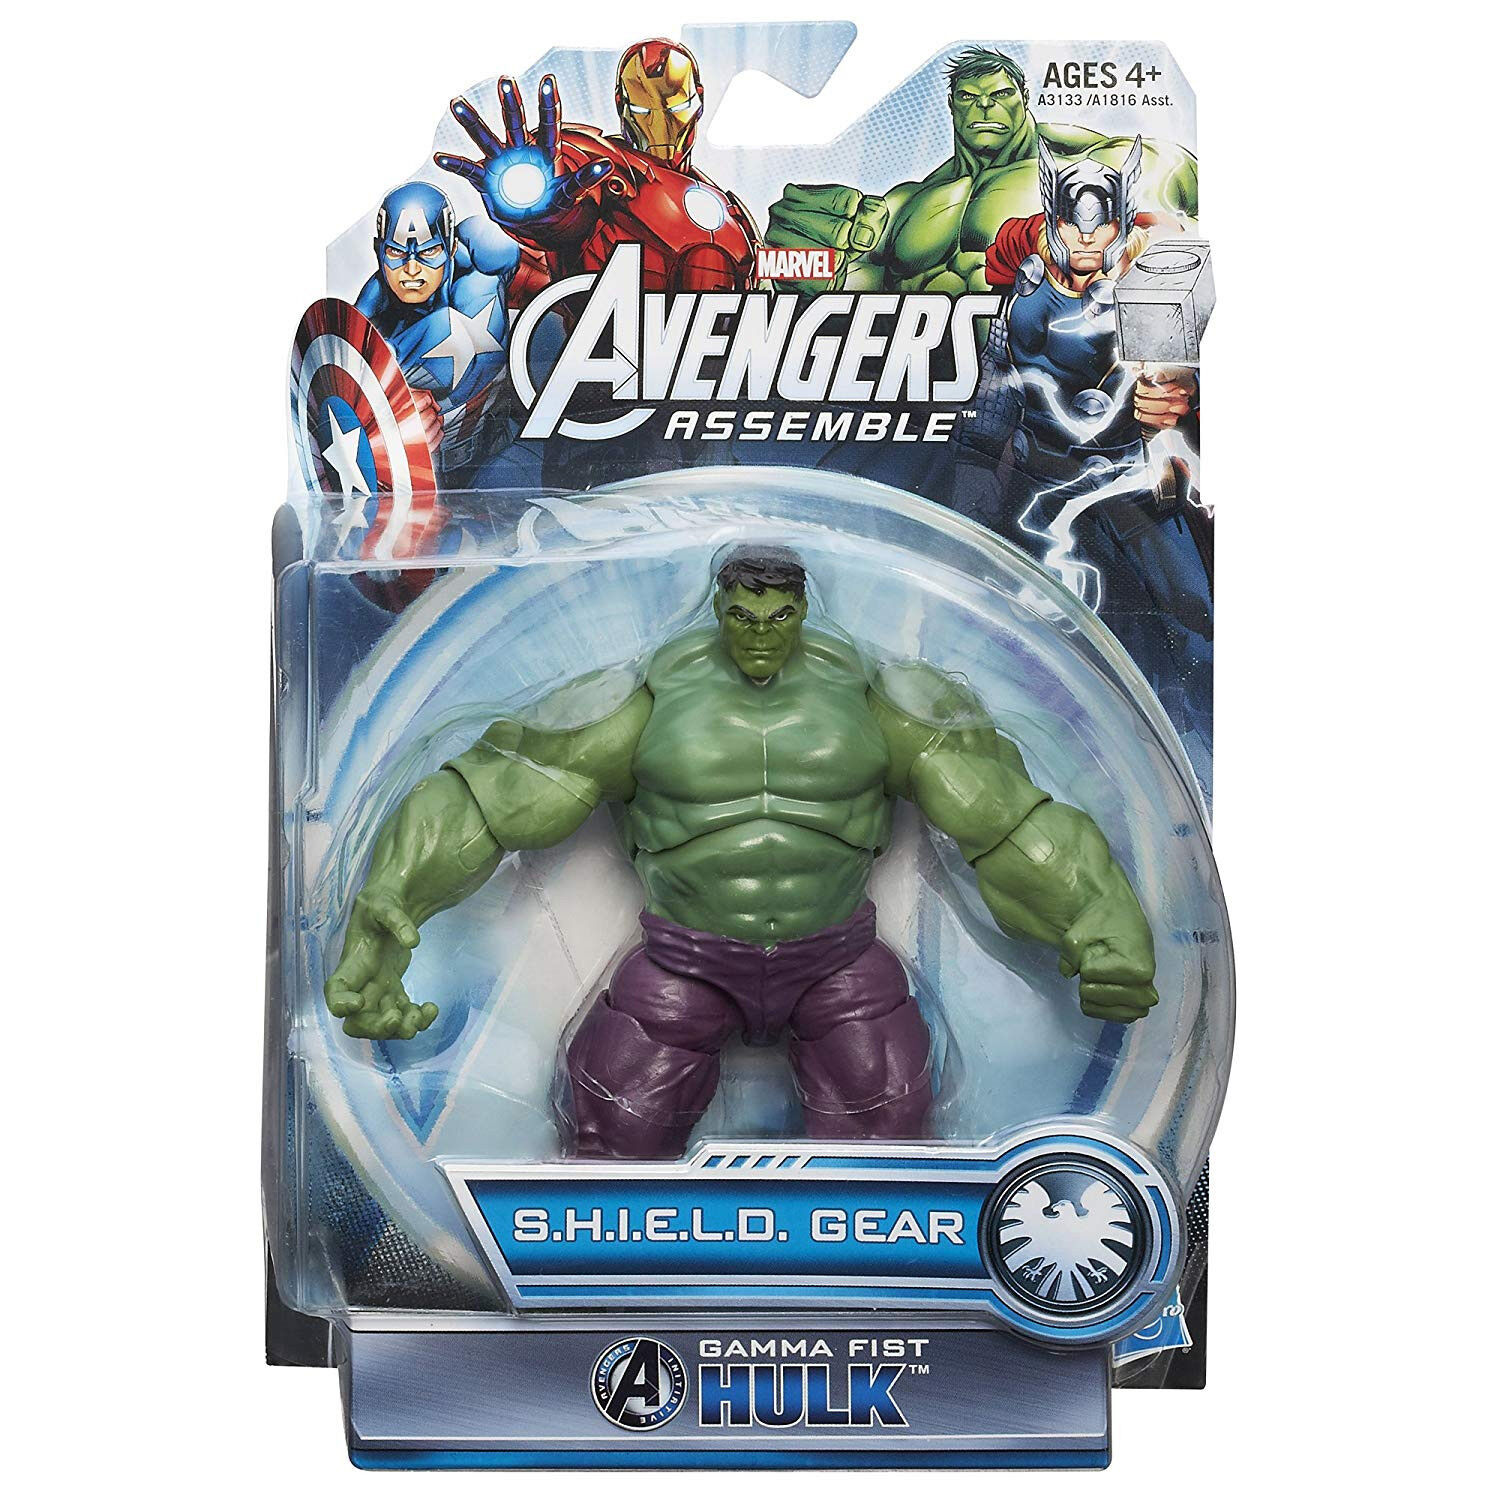 Gamma Fist Hulk Avengers Assemble S.H.I.E.L.D. Gear Action Figure